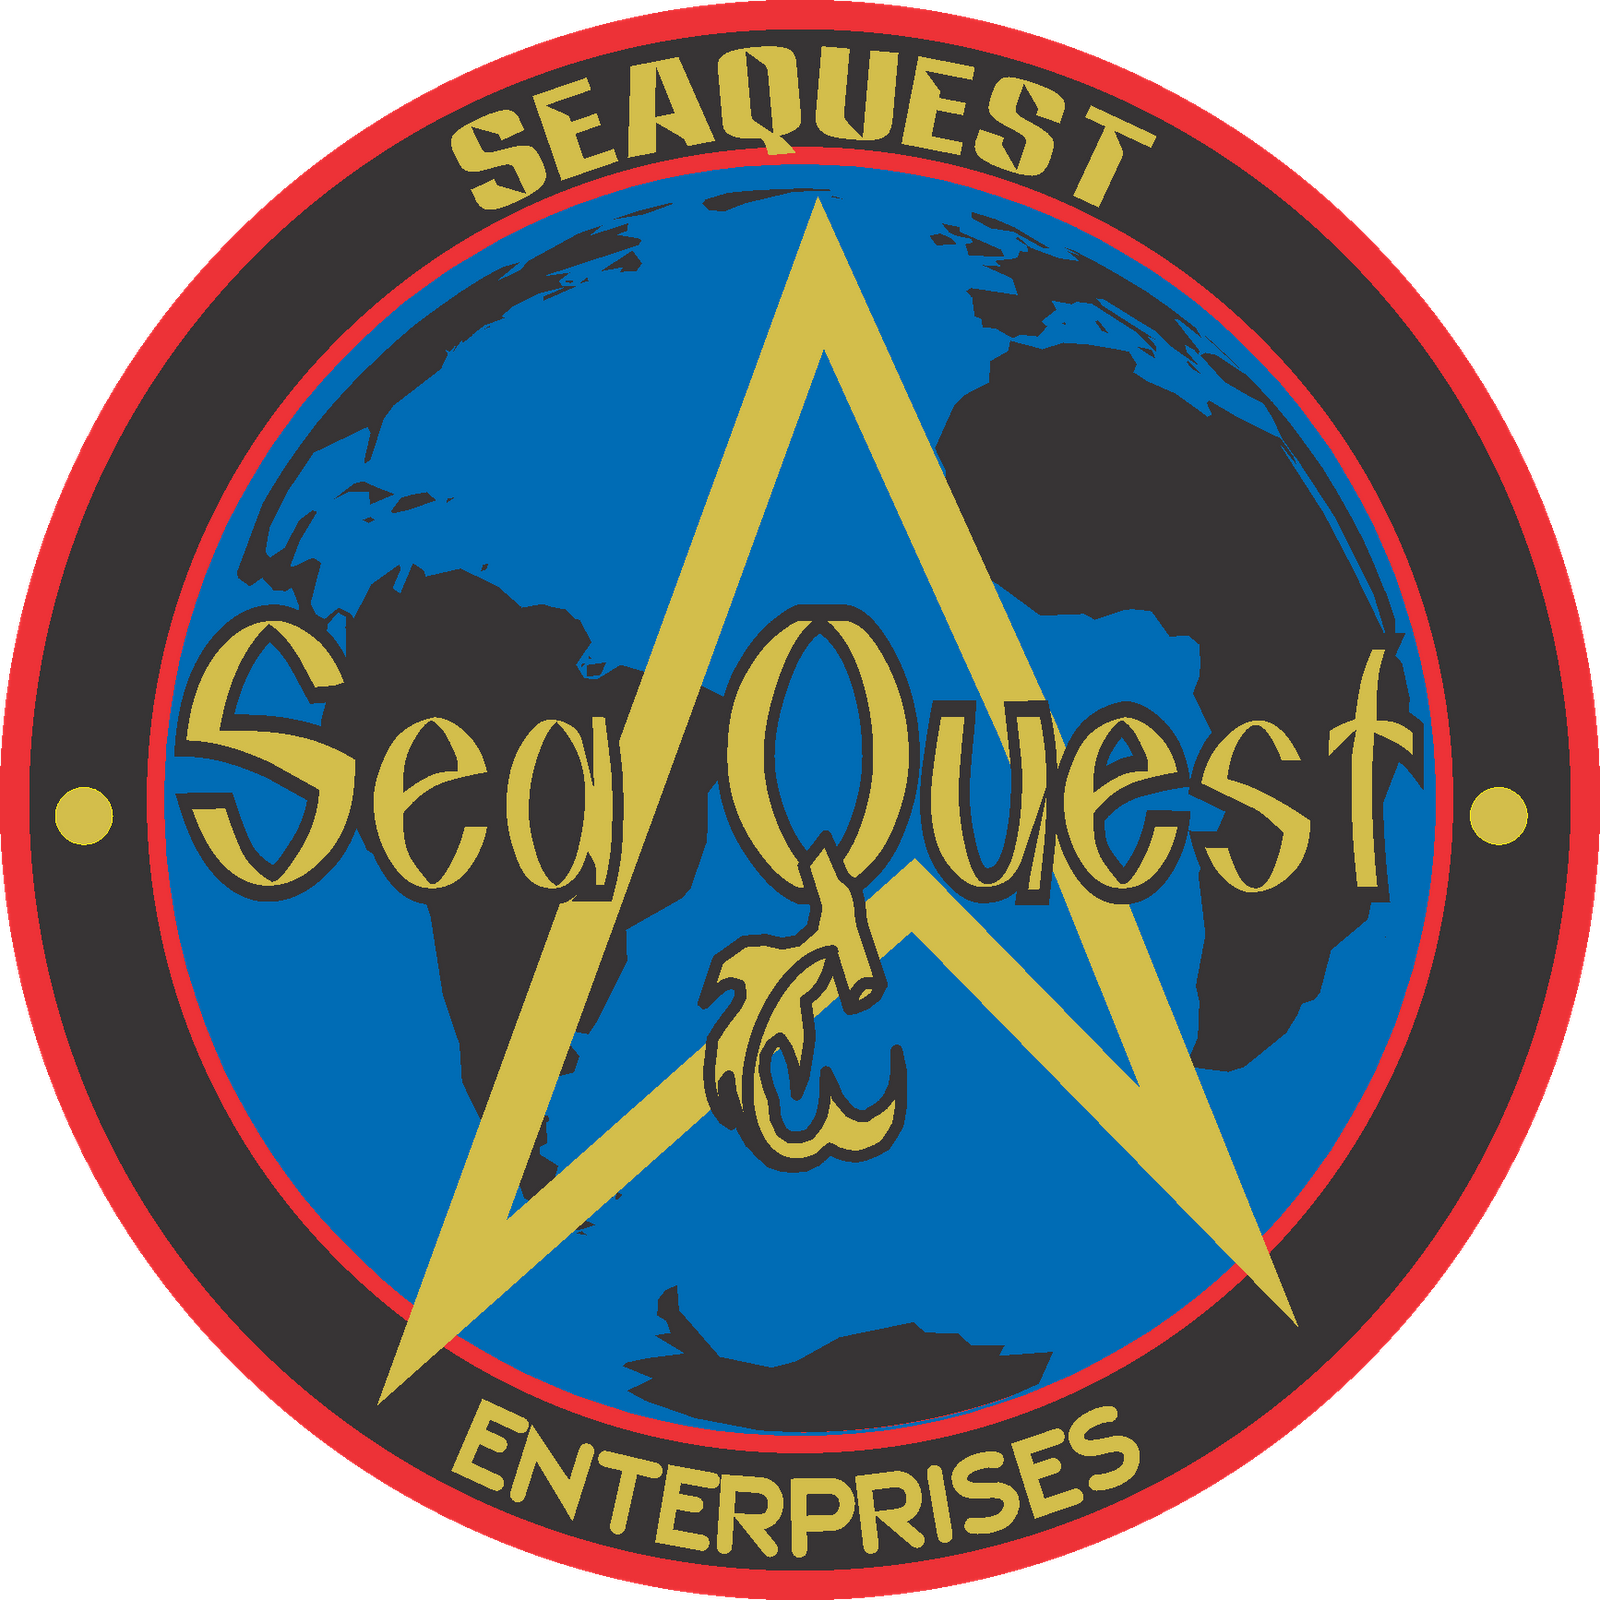 SEAQUEST ENTERPRISES